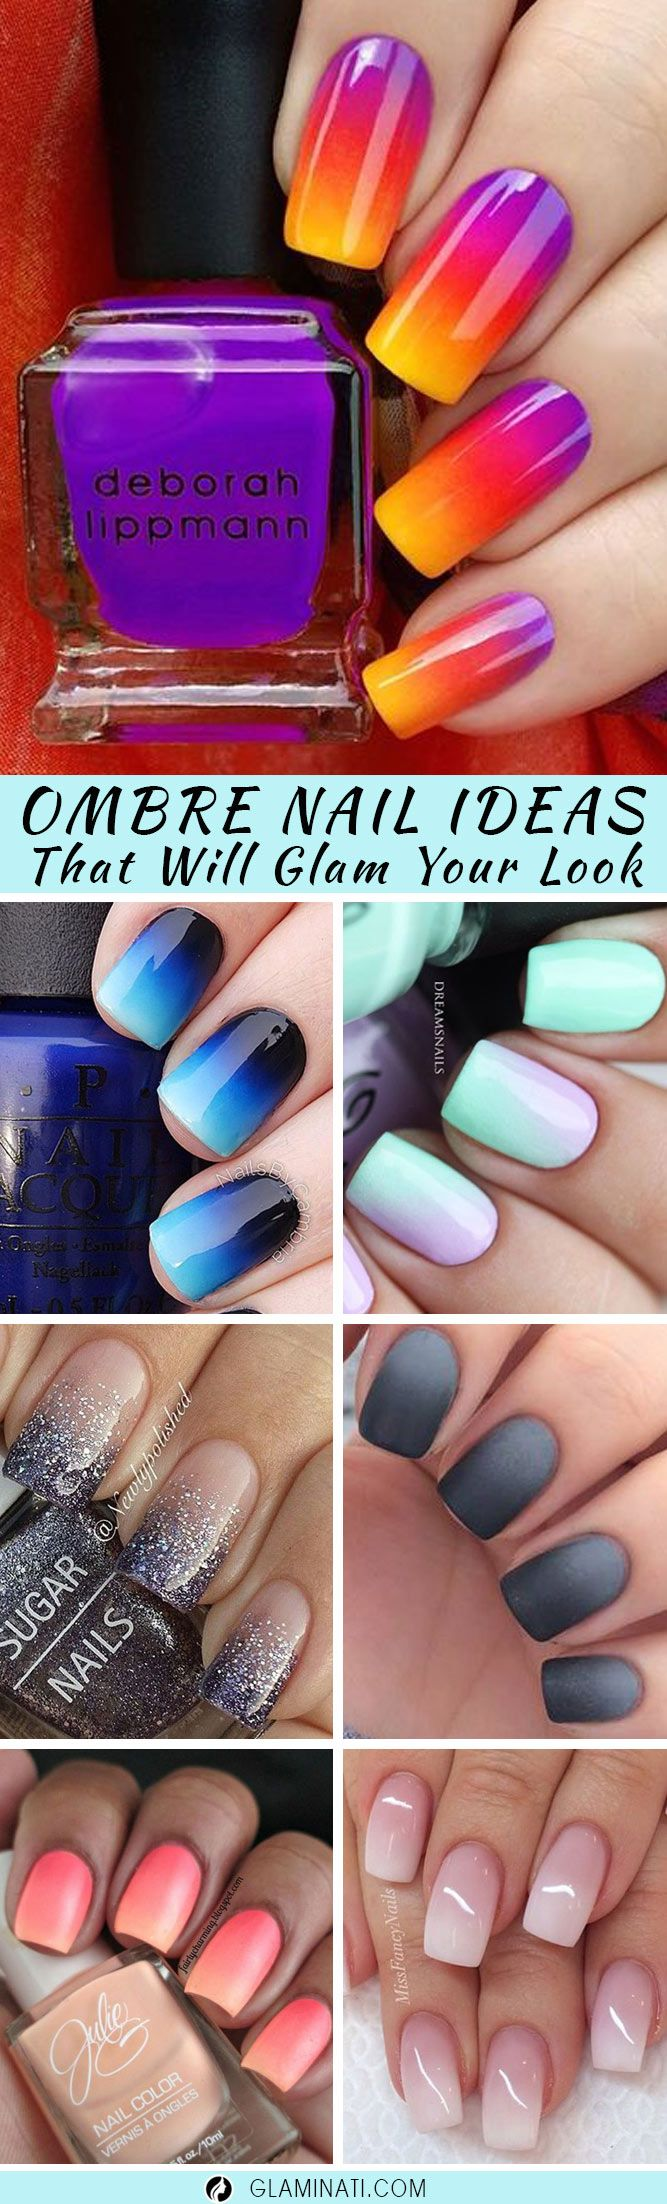 27 Ideas for Ombre Nails That Will Glam Your Look | Ombre, Makeup ...